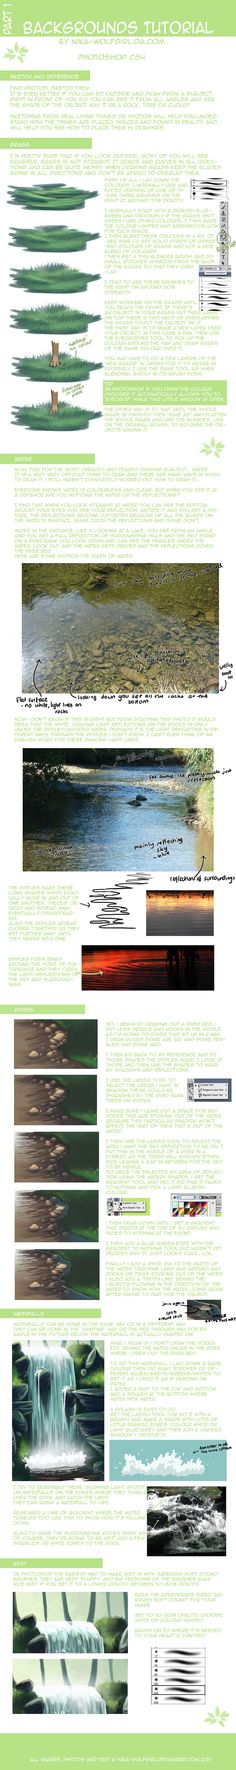 background_tutorial___part_1_by_nika_wolfgirl